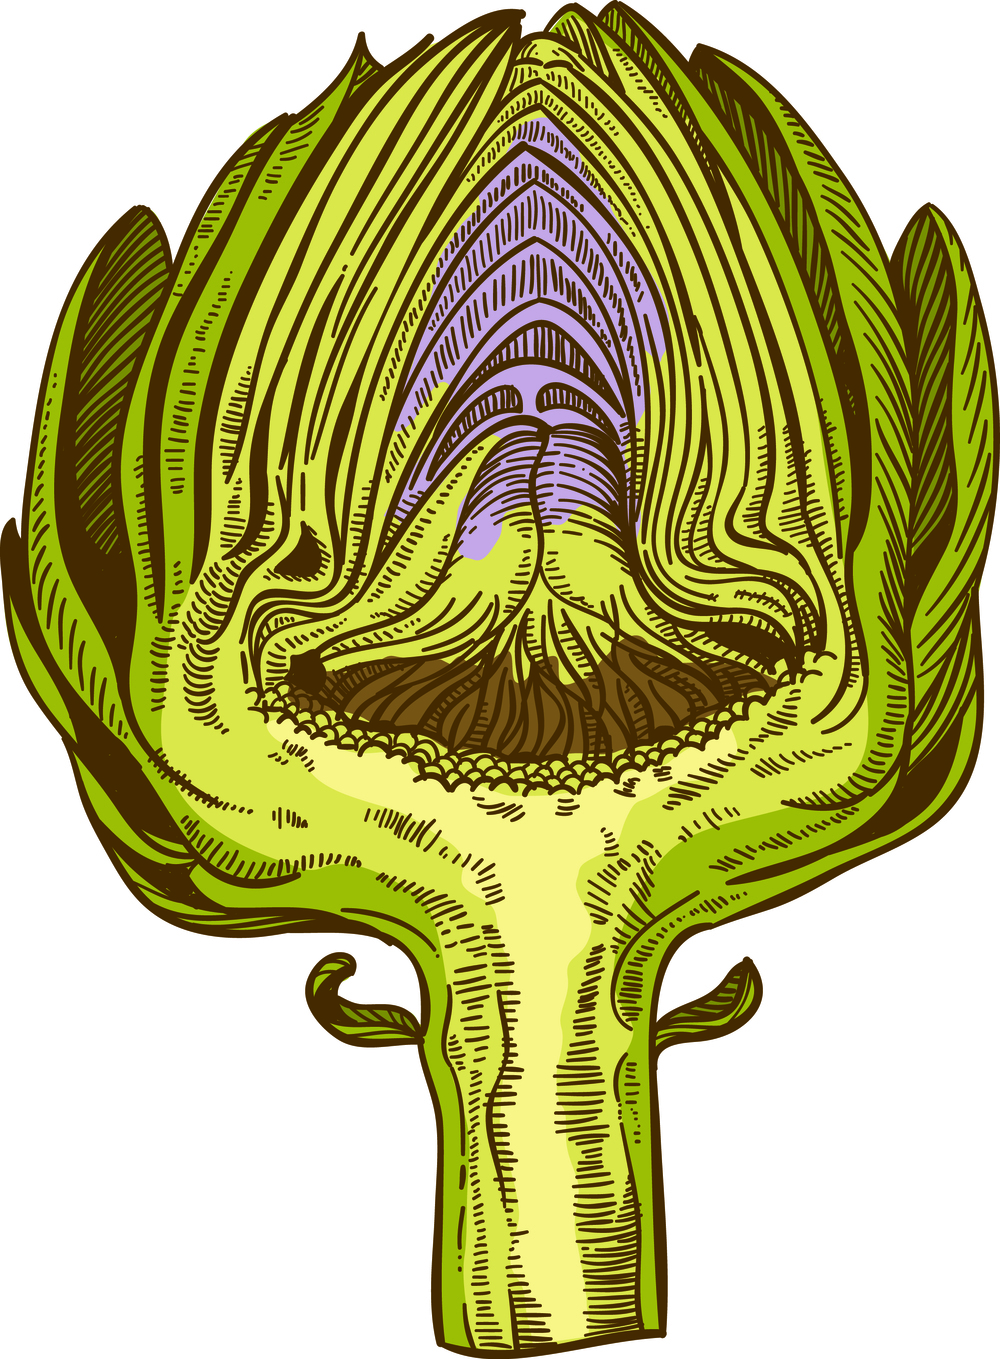 This is an artichoke cut in half